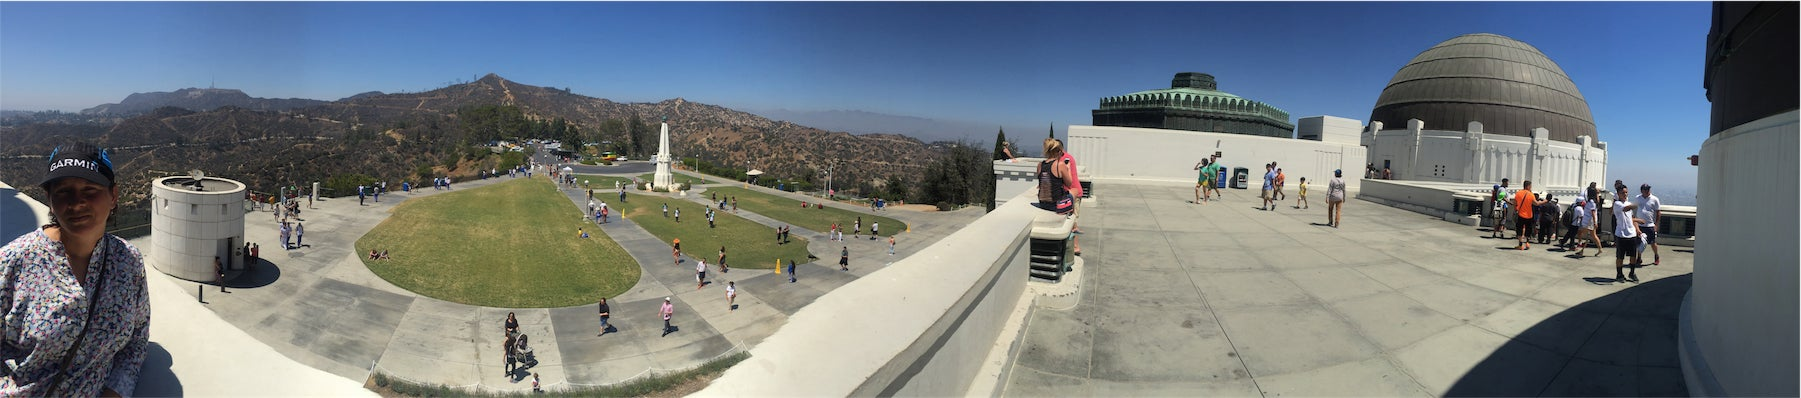 Observatorio Griffith